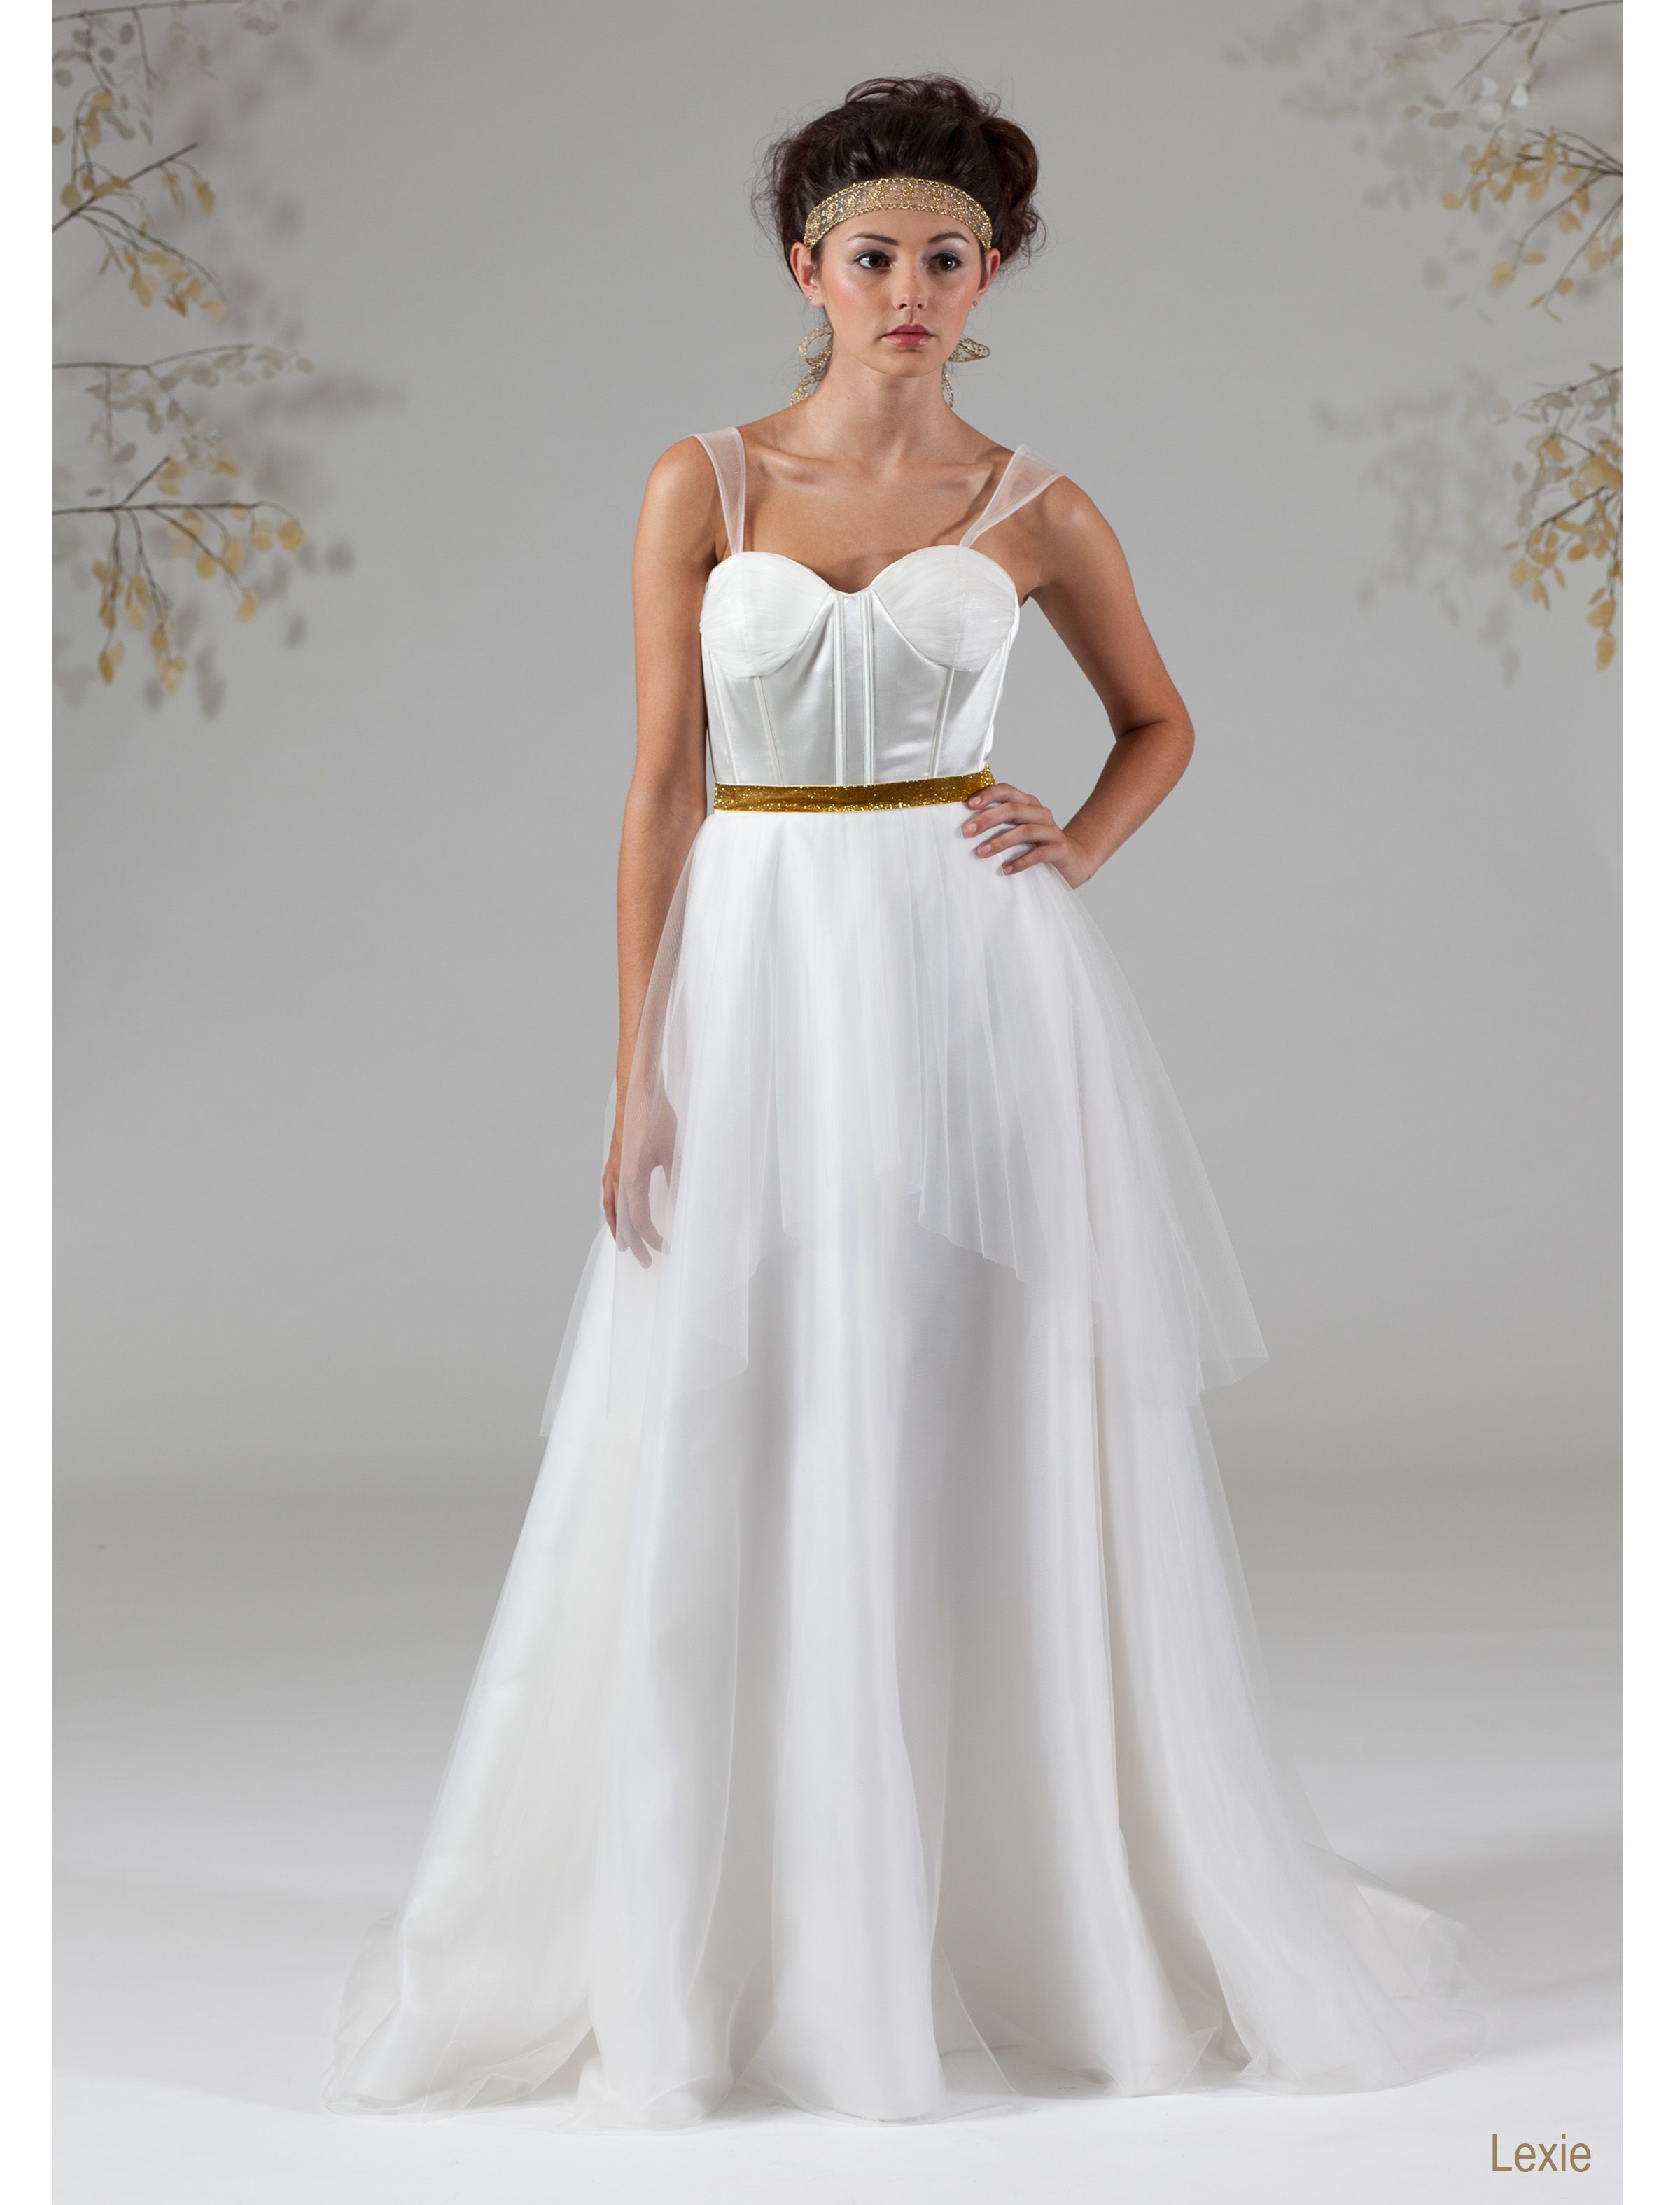 Wedding dress cups  Aline ball gown with sweetheart neckline Bodice features exposed